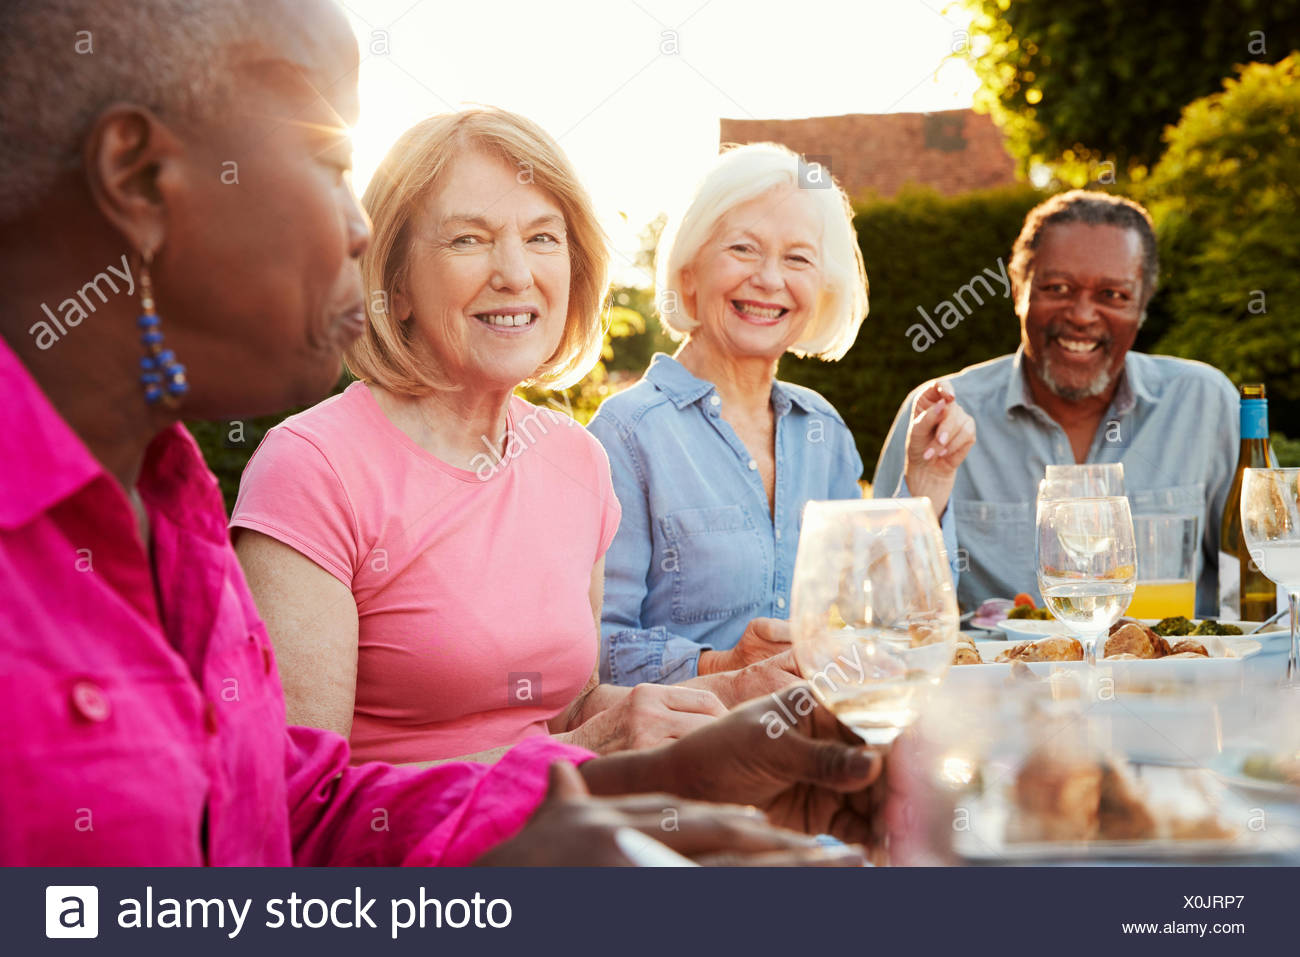 Group Of Senior Friends Enjoying Outdoor Dinner Party At Home - Stock Image